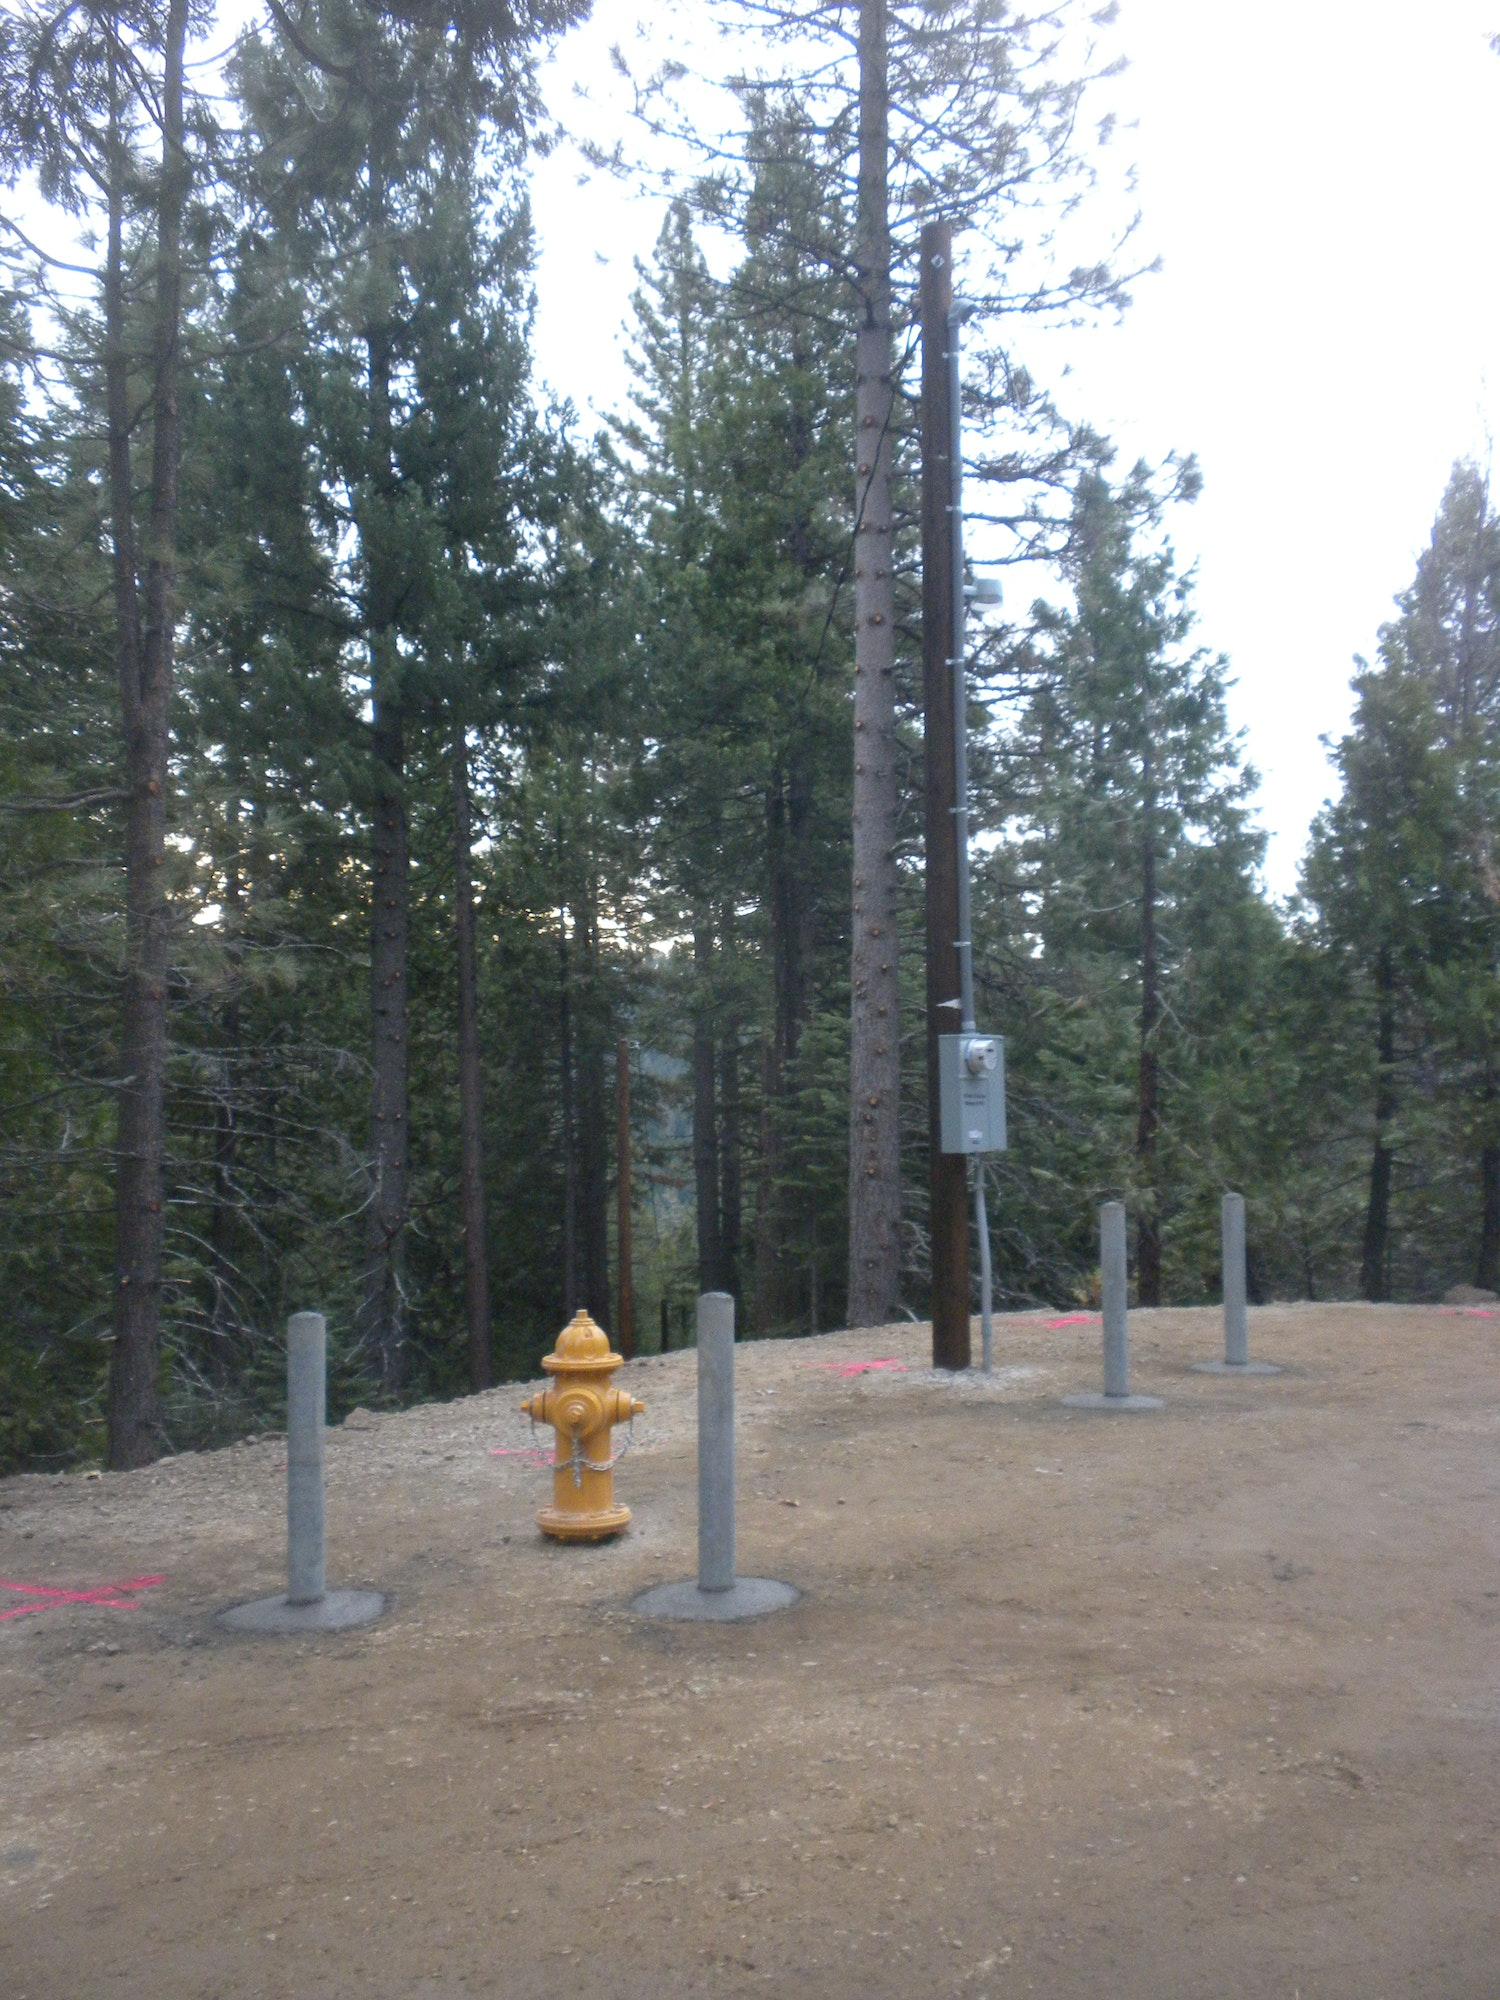 Bollards installed to protect hydrant and power pole. Dec. 14, 2018